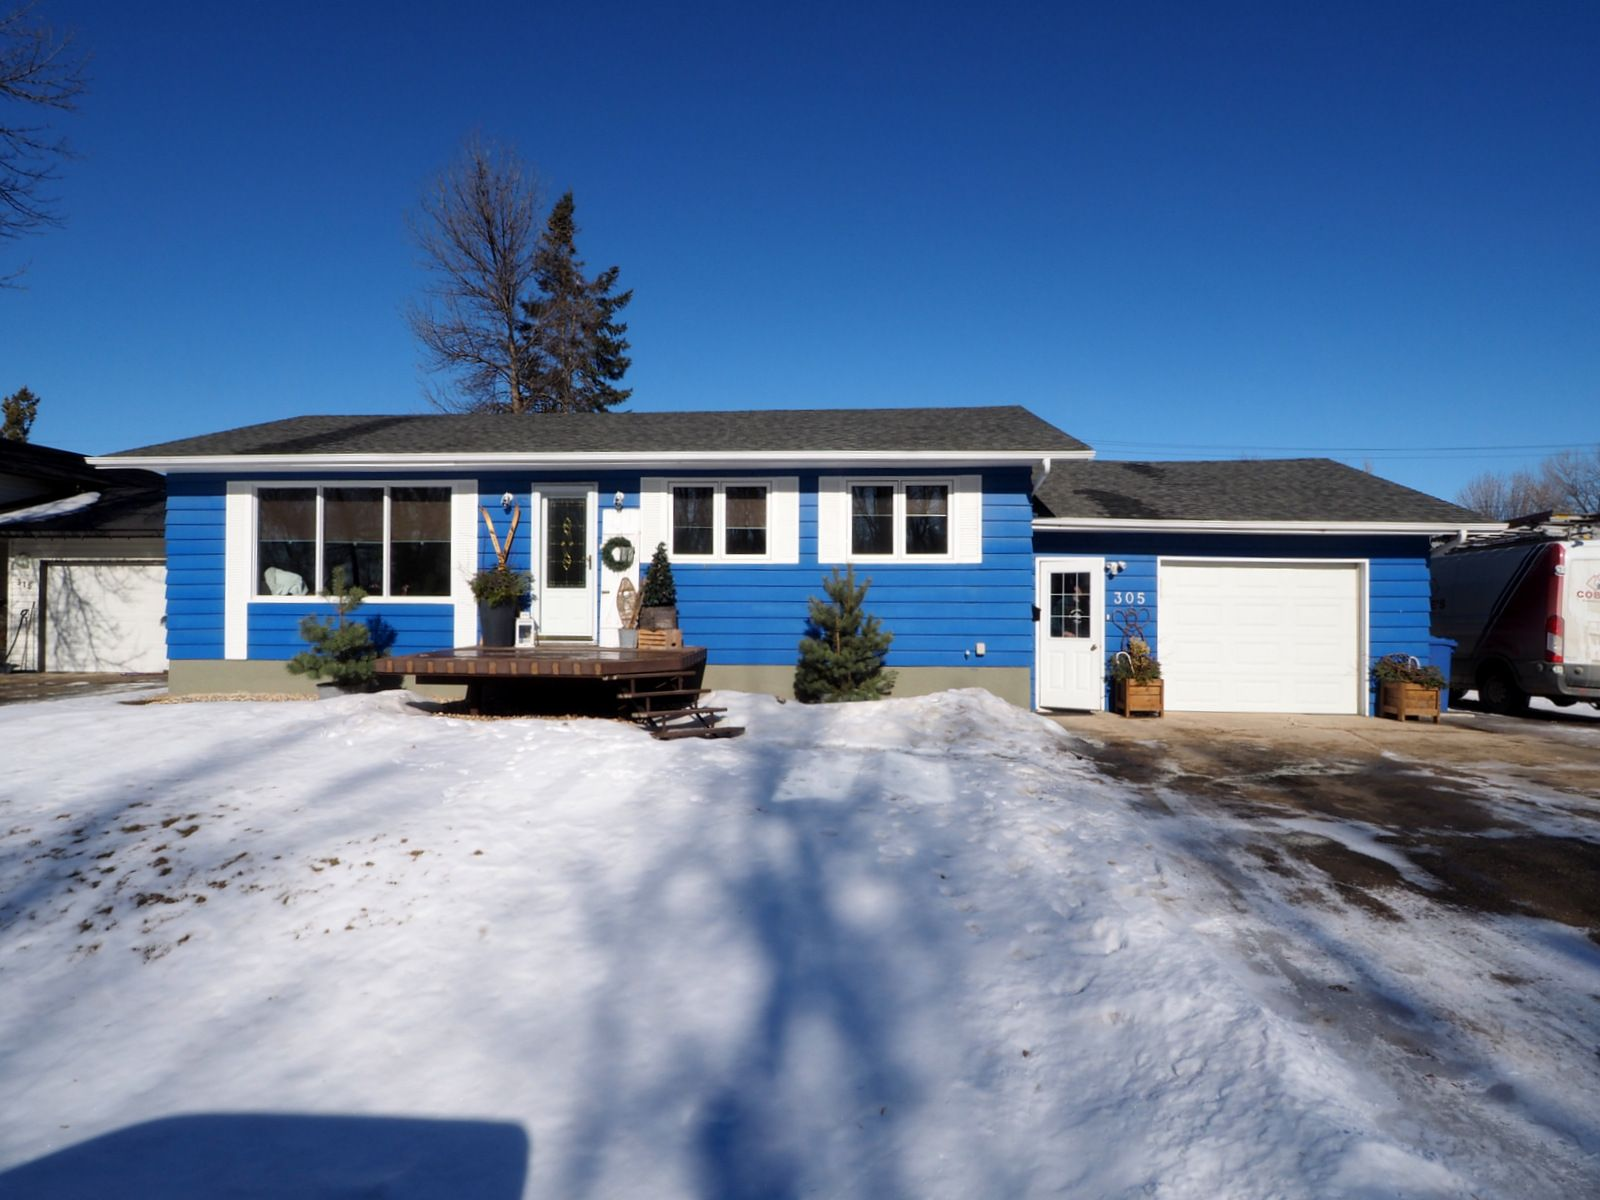 Main Photo: 305 Caithness Street in Portage la Prairie: House for sale : MLS®# 202104391